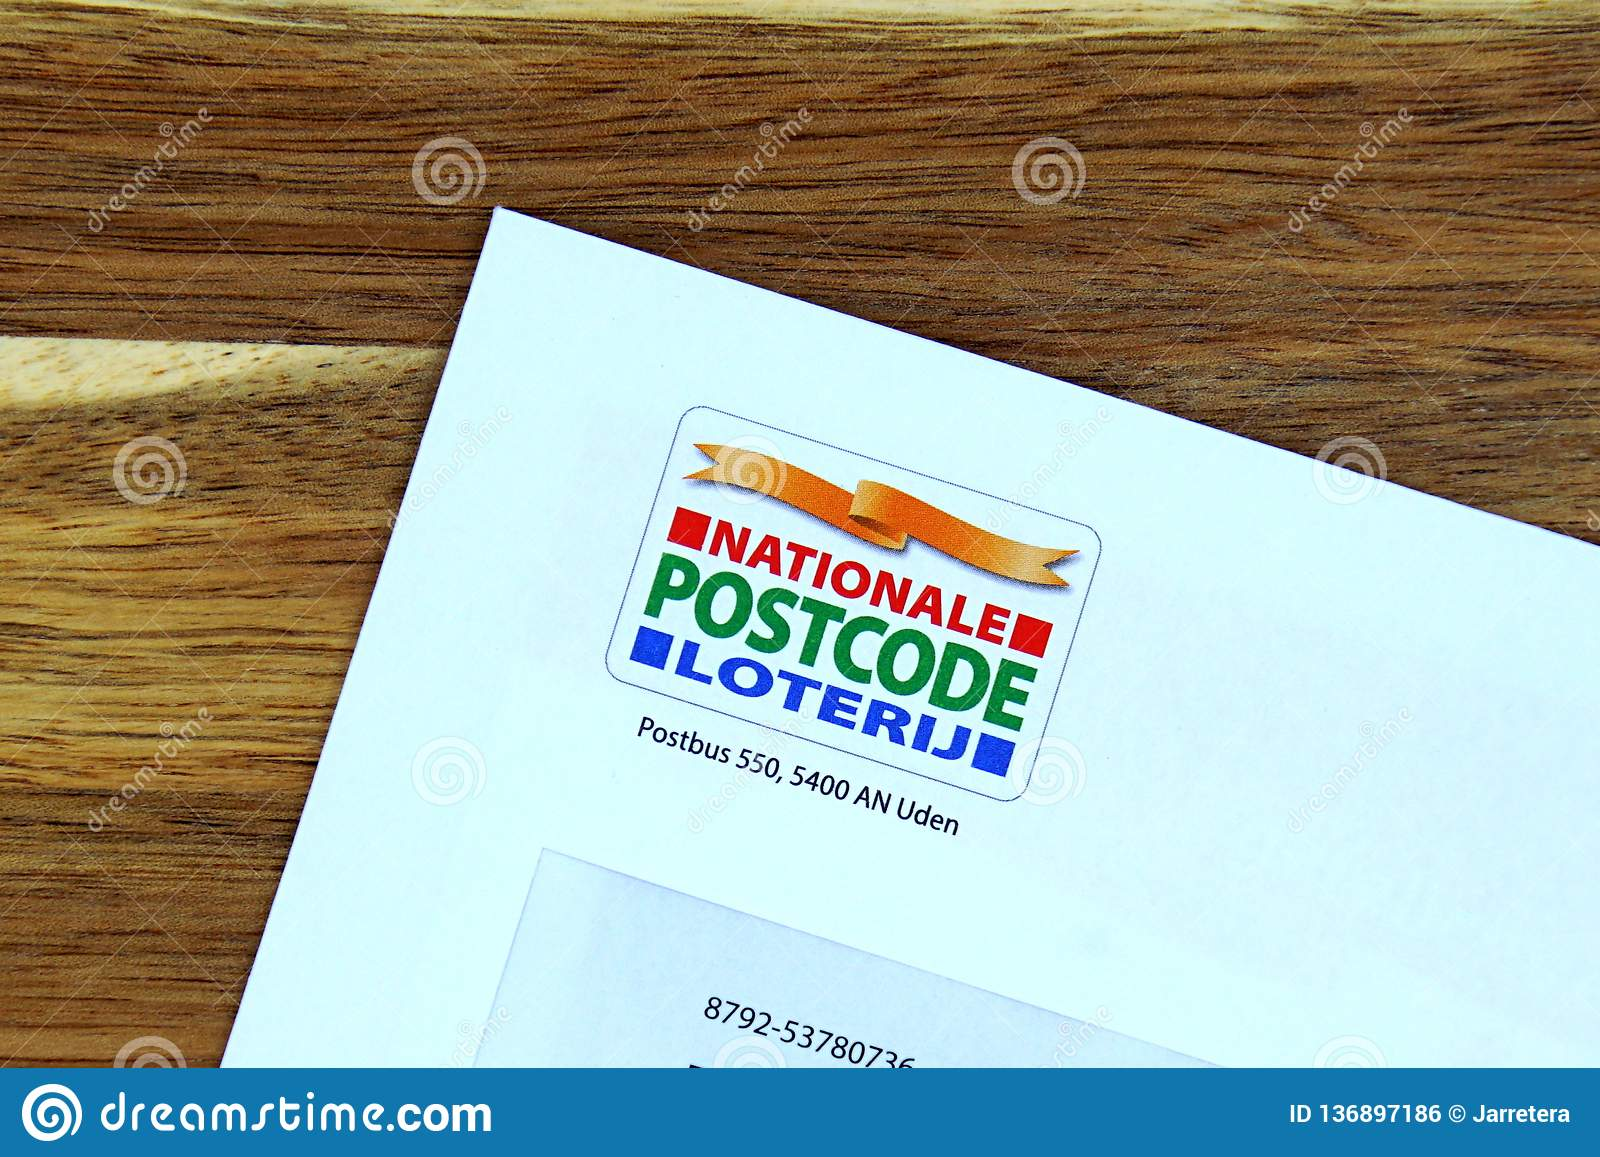 Dutch Lottery Postcode Loterij On A Envelope Editorial Photo Image